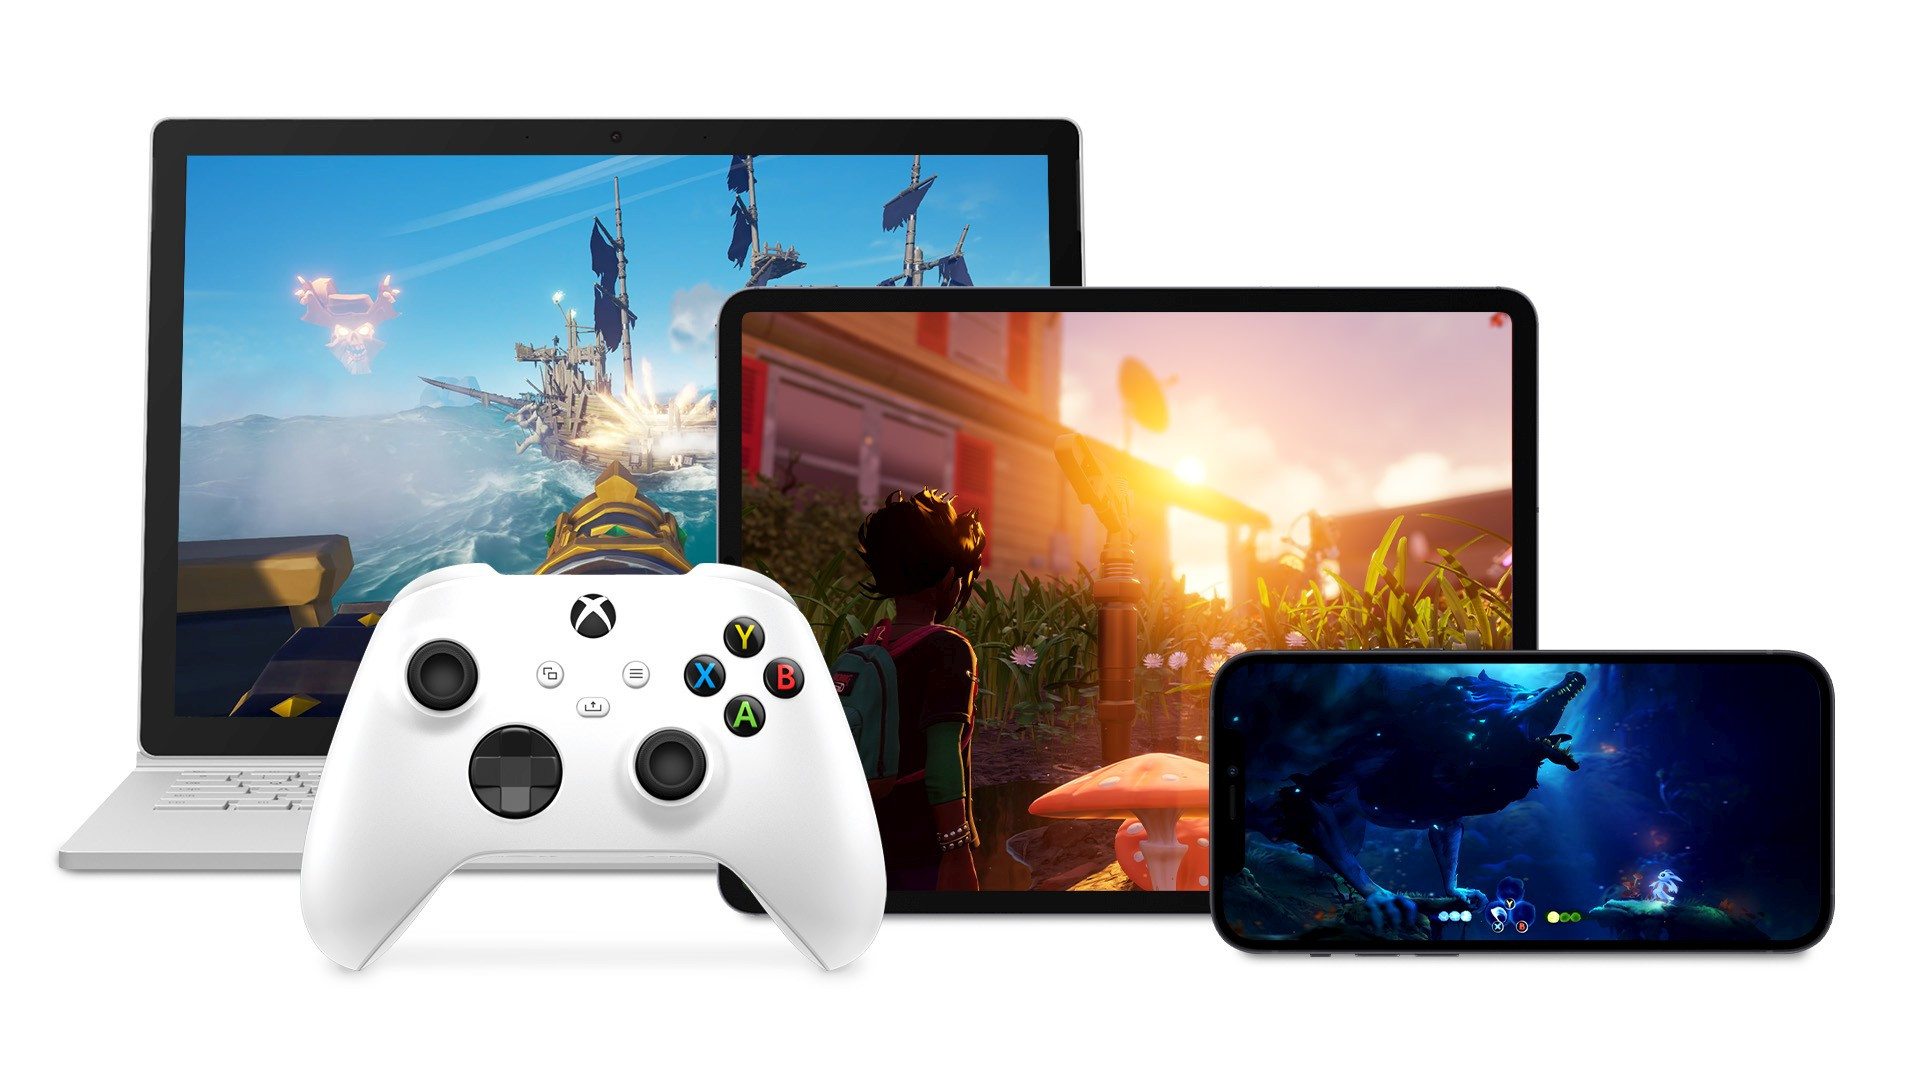 Microsoft Bets Big on Cloud Gaming - Counterpoint Research